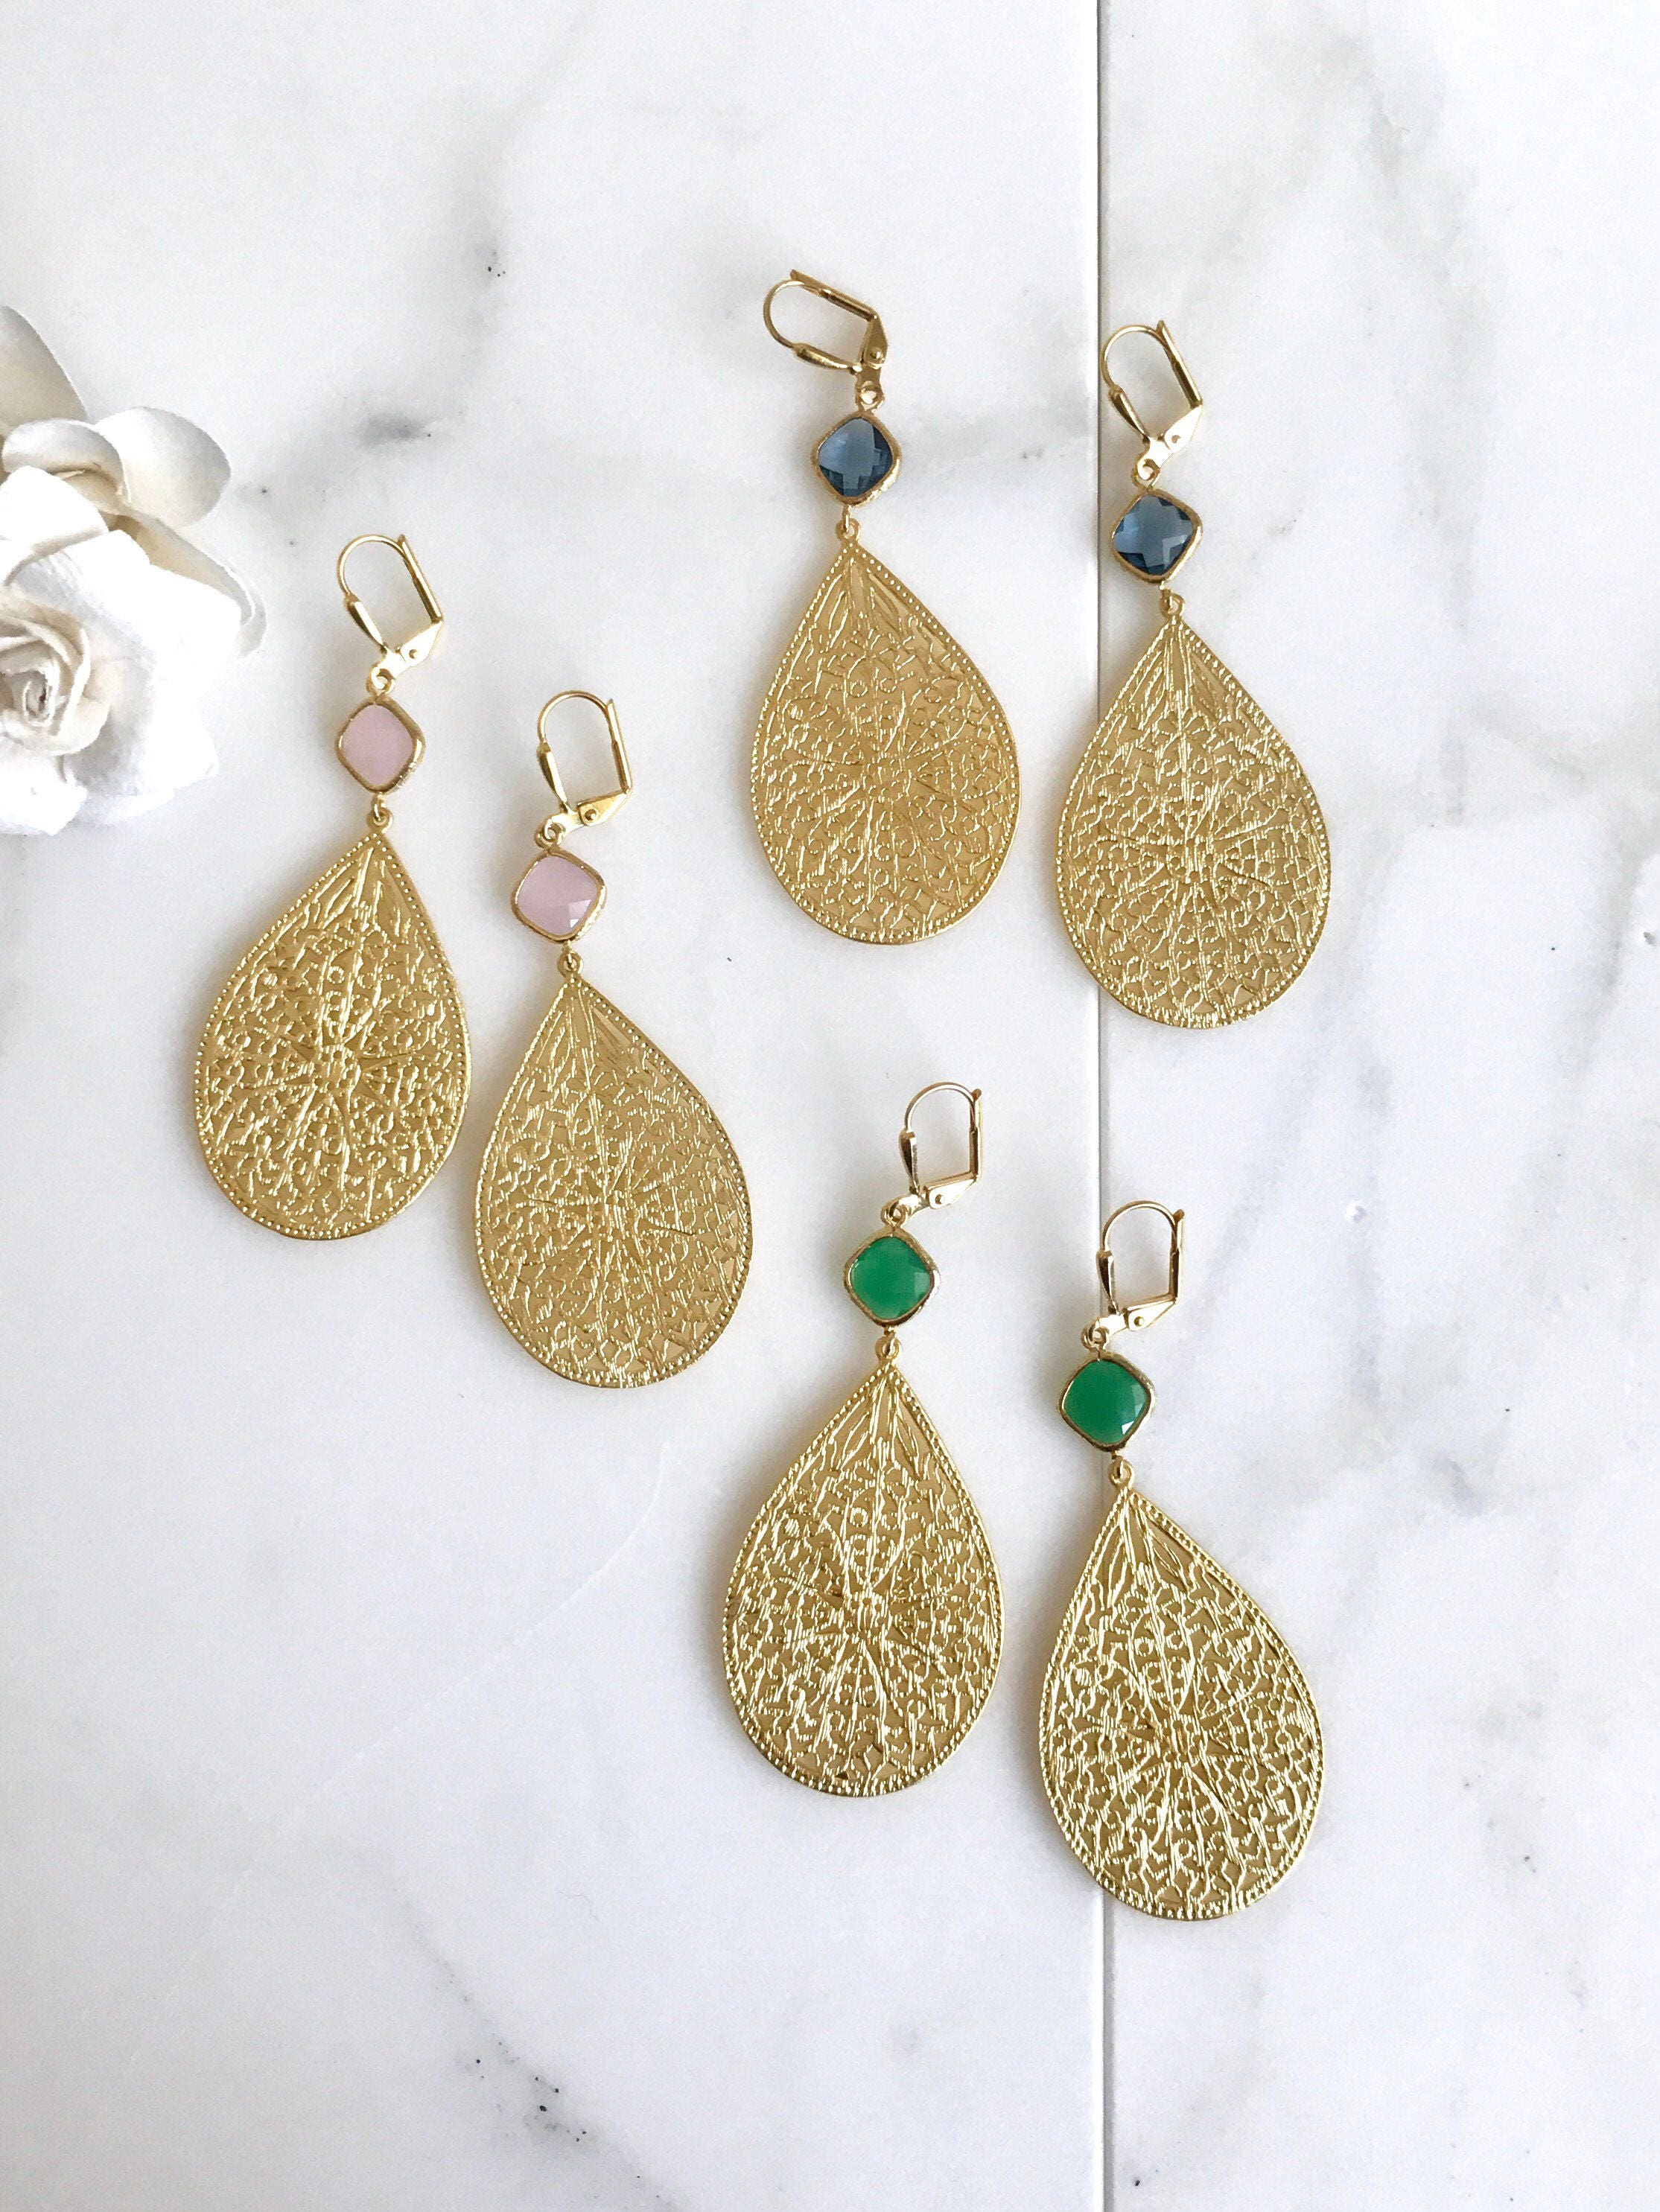 Gold statement chandelier earrings dangle earrings statement gold statement chandelier earrings dangle earrings statement earrings jewelry gift modern fashion drop earrings chandelier earrings aloadofball Choice Image